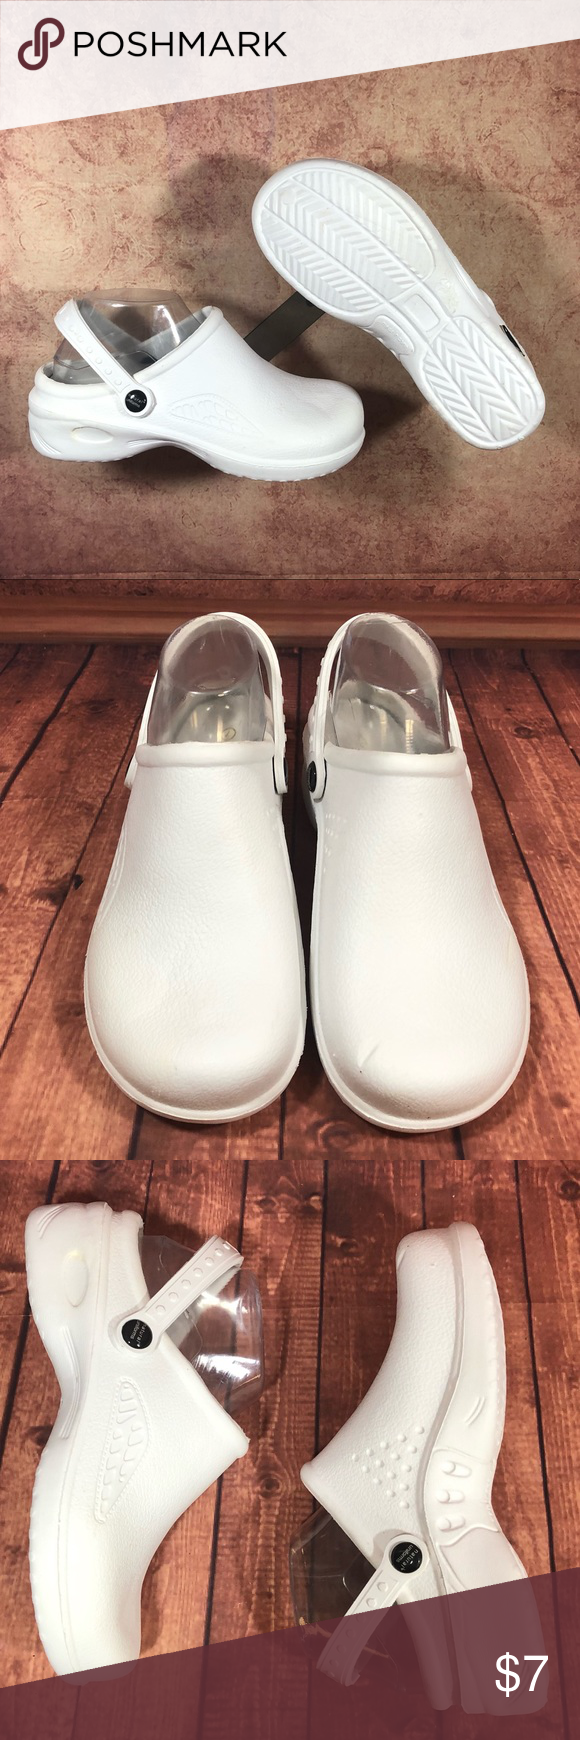 b9a9589fe3557 Natural Uniforms Womens Ultralite Strap Clogs s73 🌟Nearly new preowns show  minimal wear & minimal